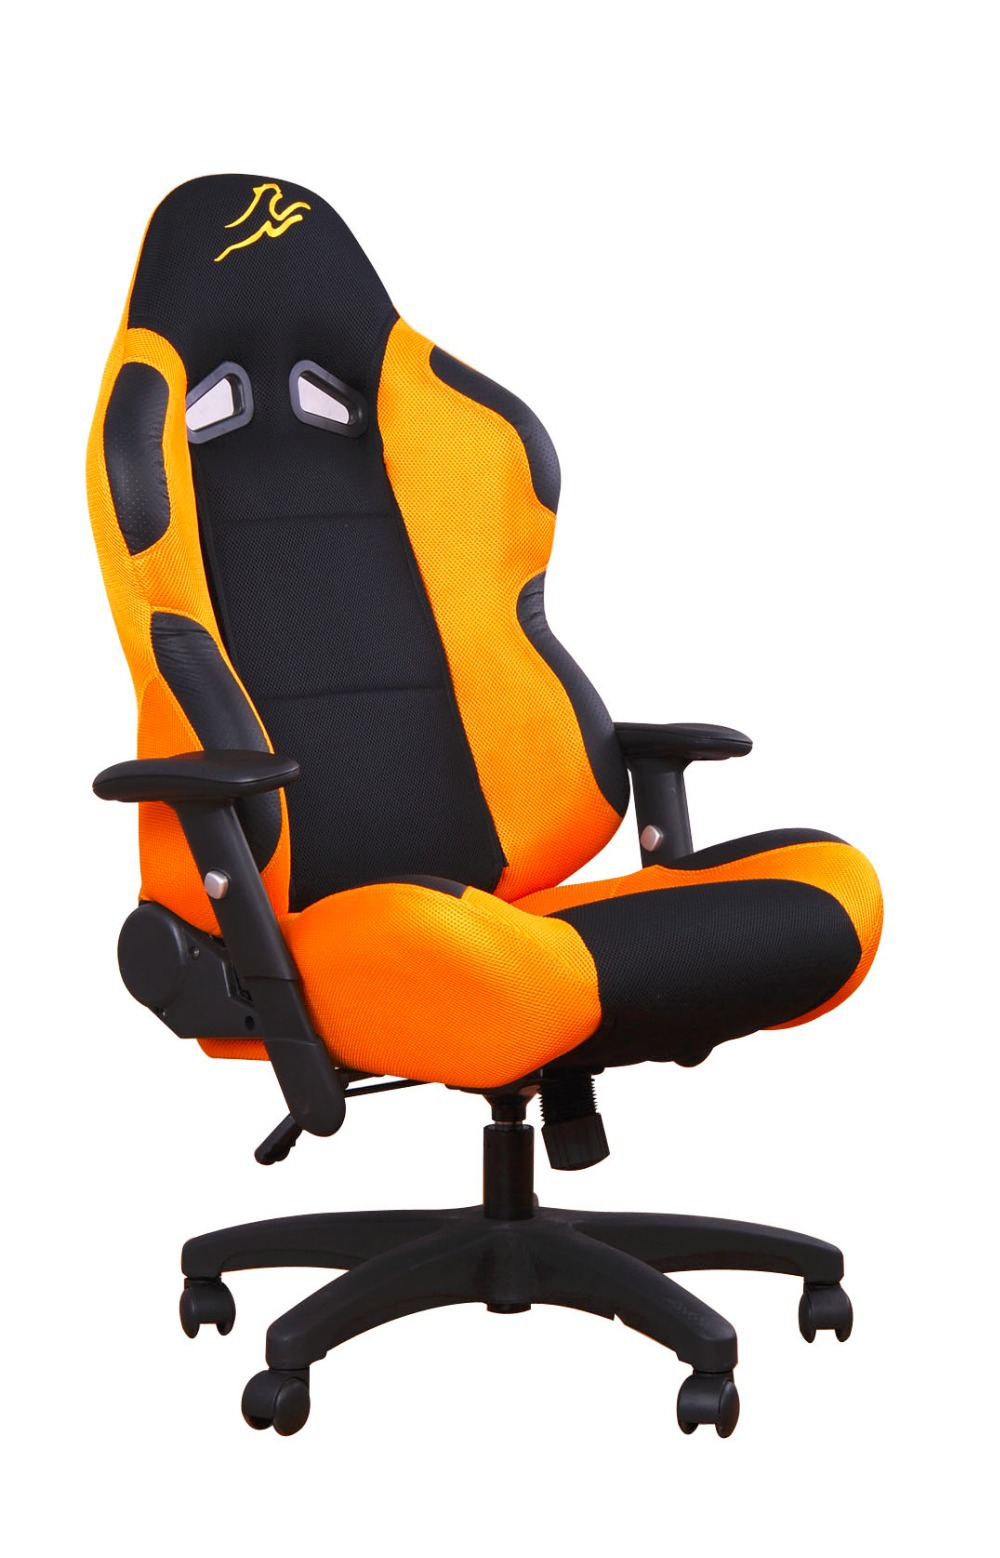 modern racing office chair ergonomic executive chair car seat style office chair fabric office. Black Bedroom Furniture Sets. Home Design Ideas